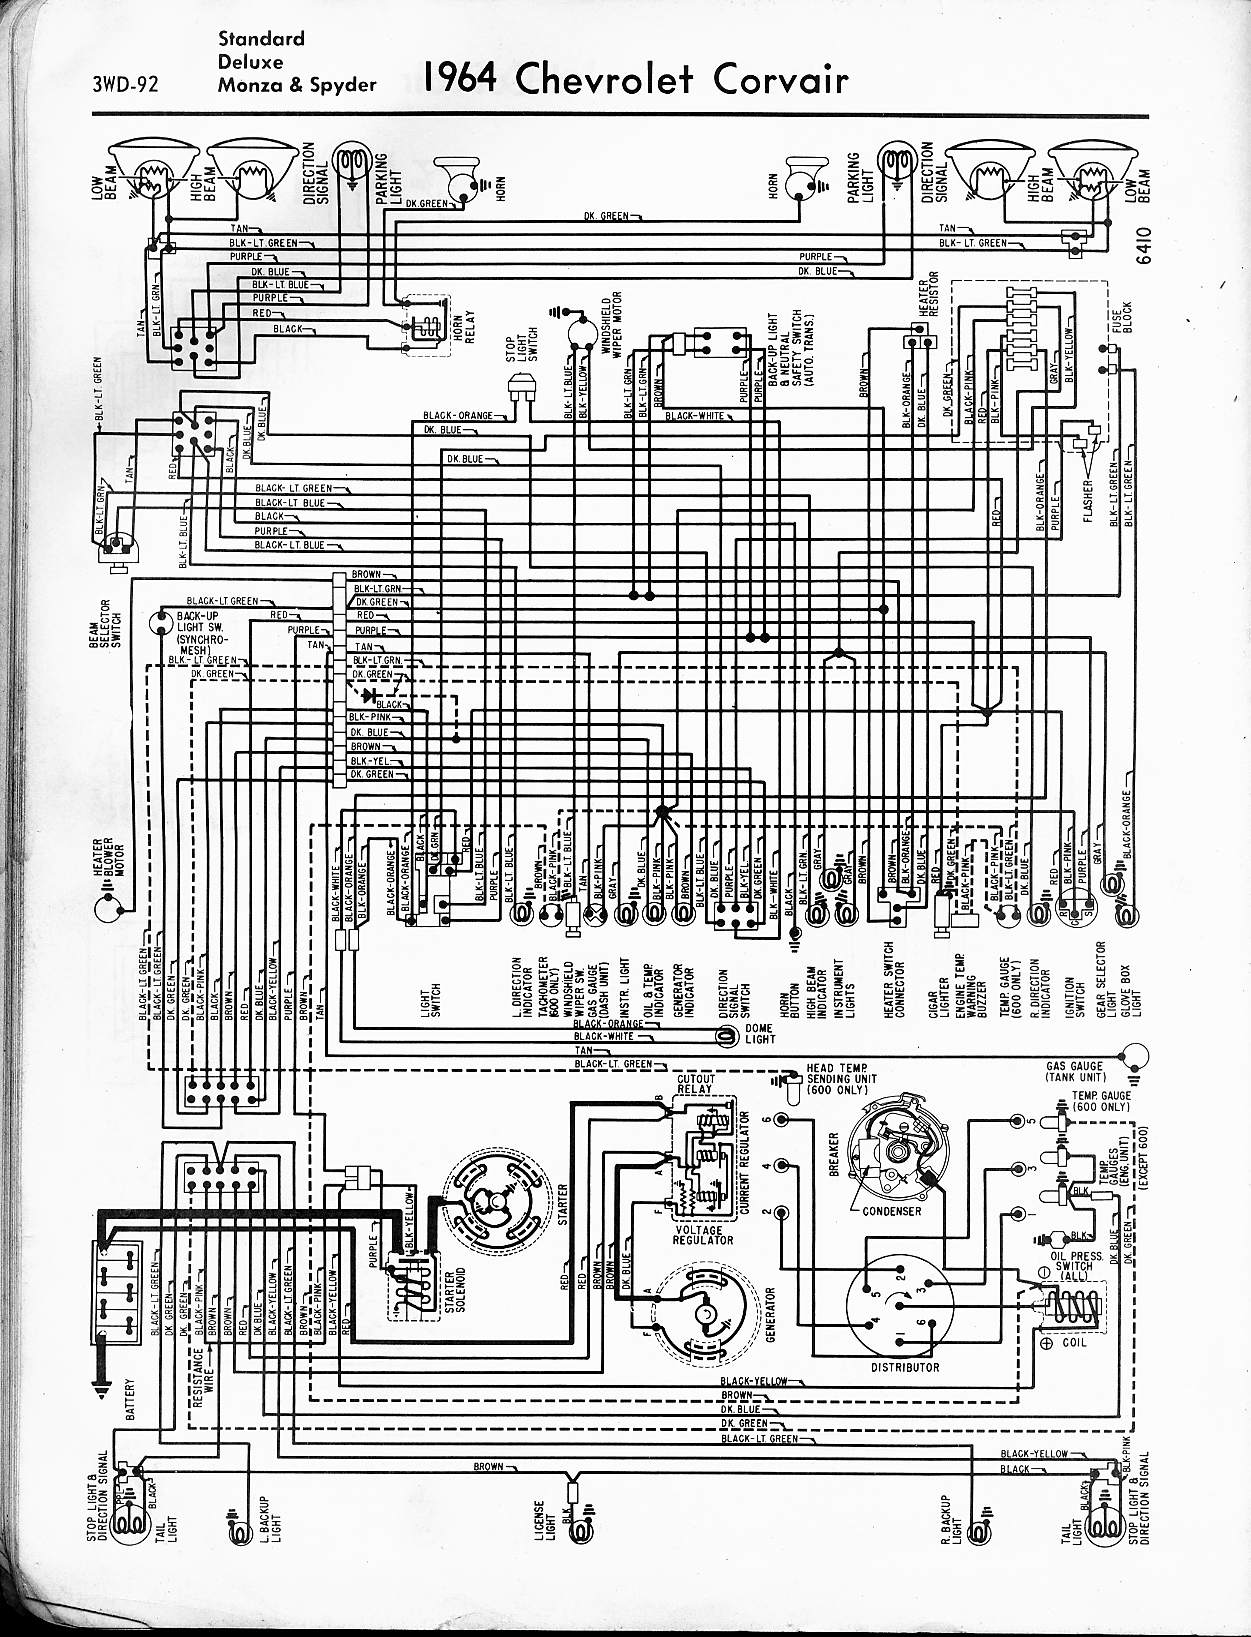 65 nova wiring diagram experts of wiring diagram u2022 rh evilcloud co uk  1964 Chevy Nova Wiring Diagram 1964 Chevy Nova Wiring Diagram